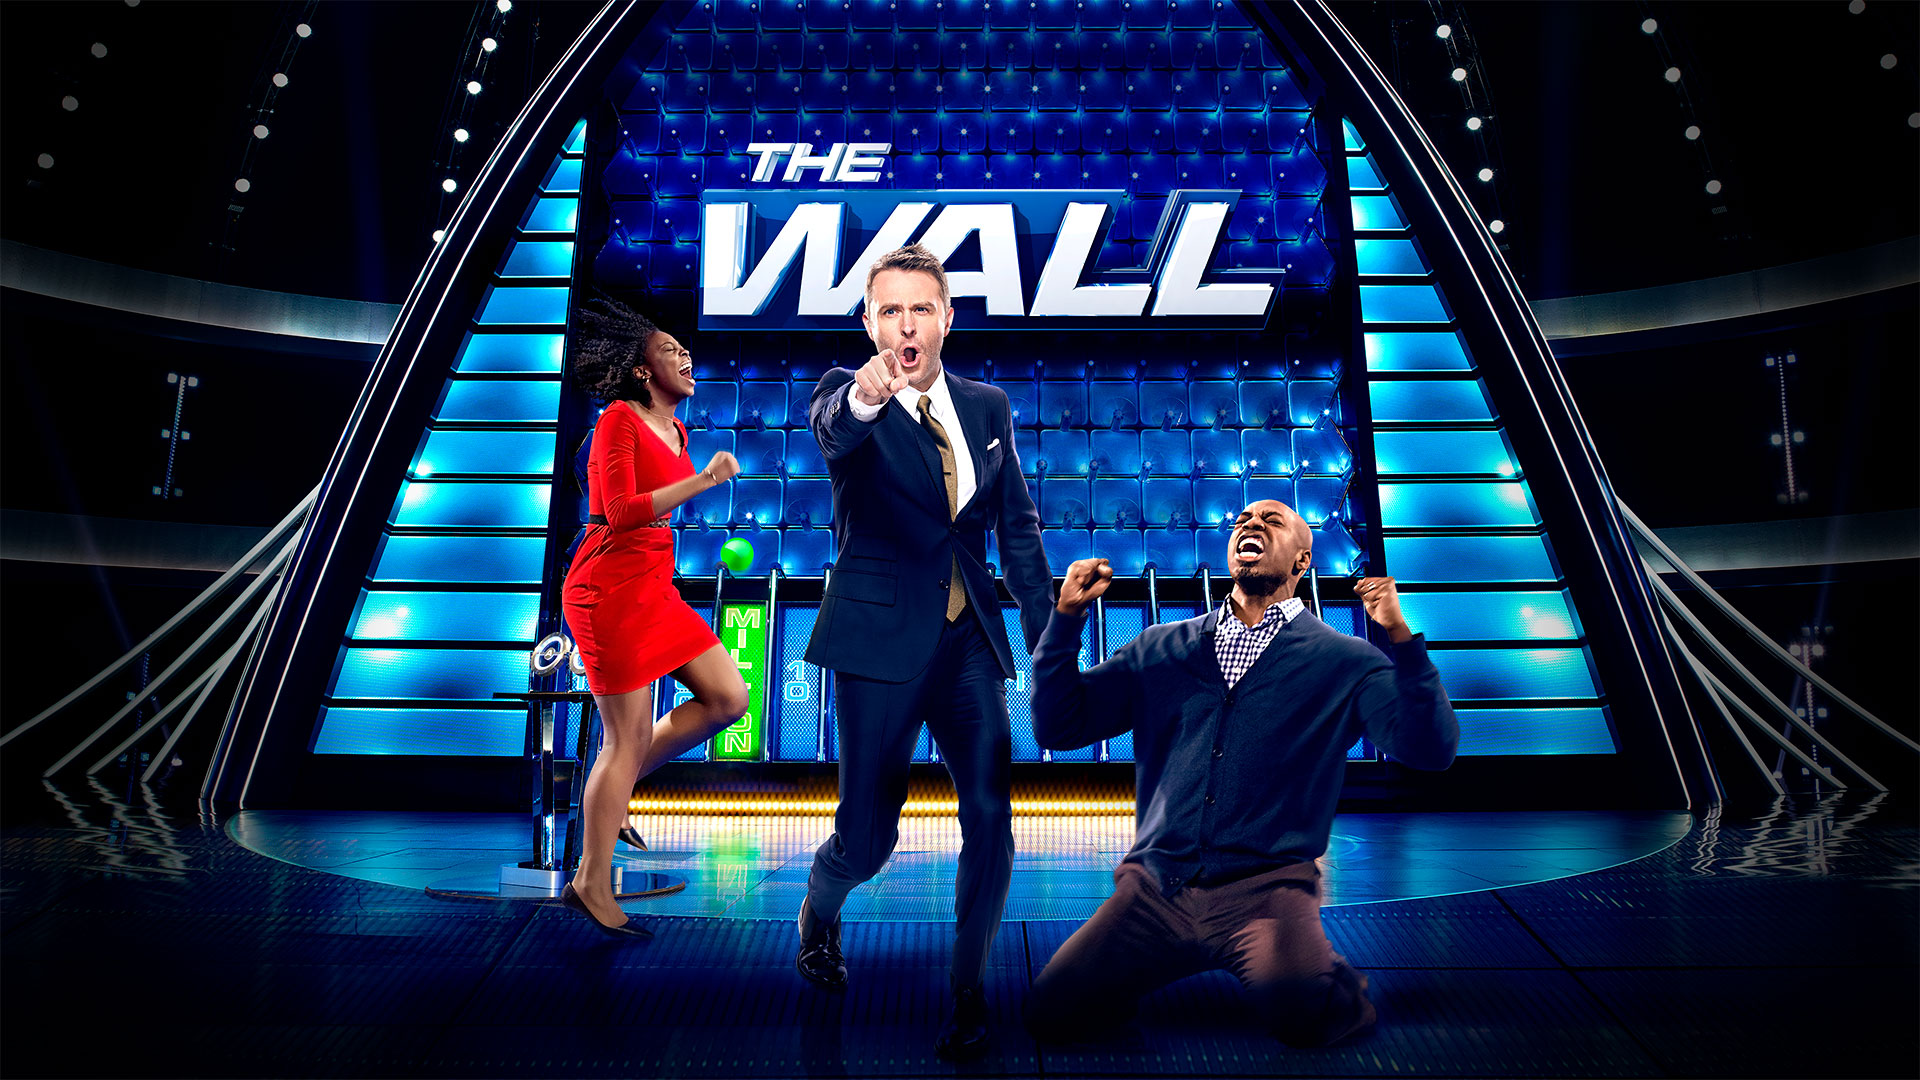 the wall sweepstakes nbc com watch the wall episodes nbc com 2106